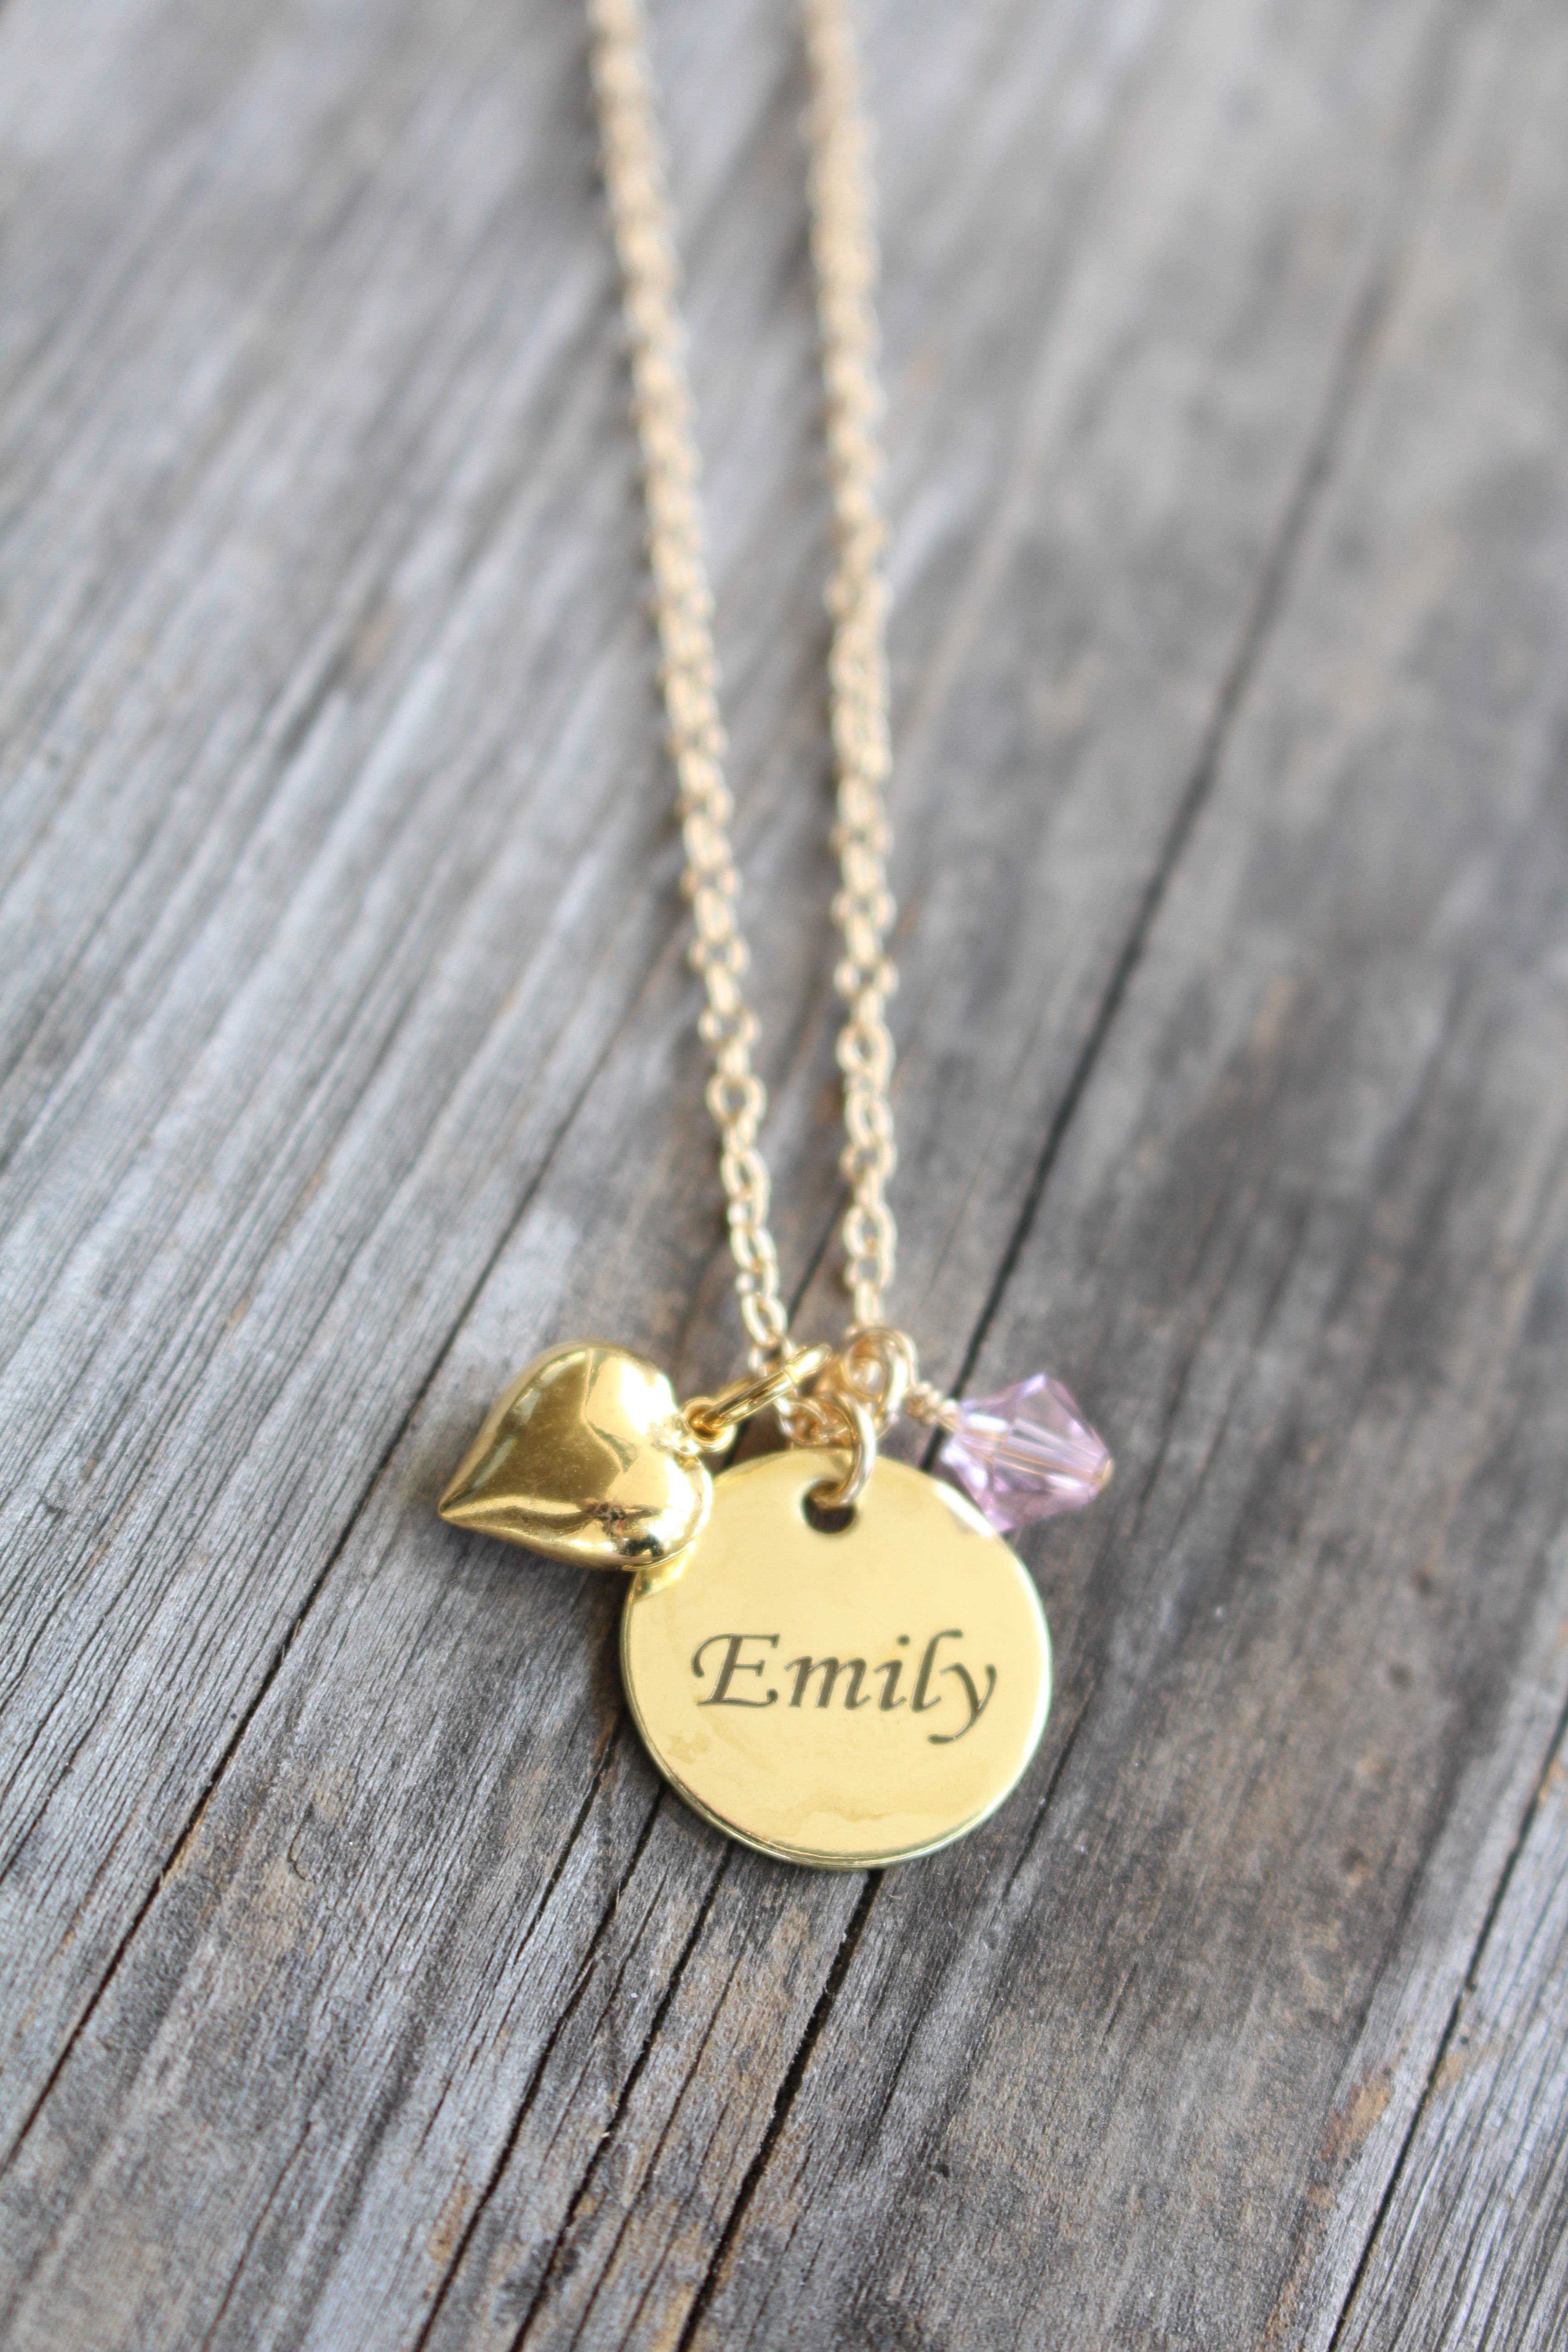 c1ff1d424 Jewelry for Girls Necklaces, Flower Girl Name Necklace, Personalized Custom  Engraved - Birthday Christmas Gift Idea - Birthstone Necklace